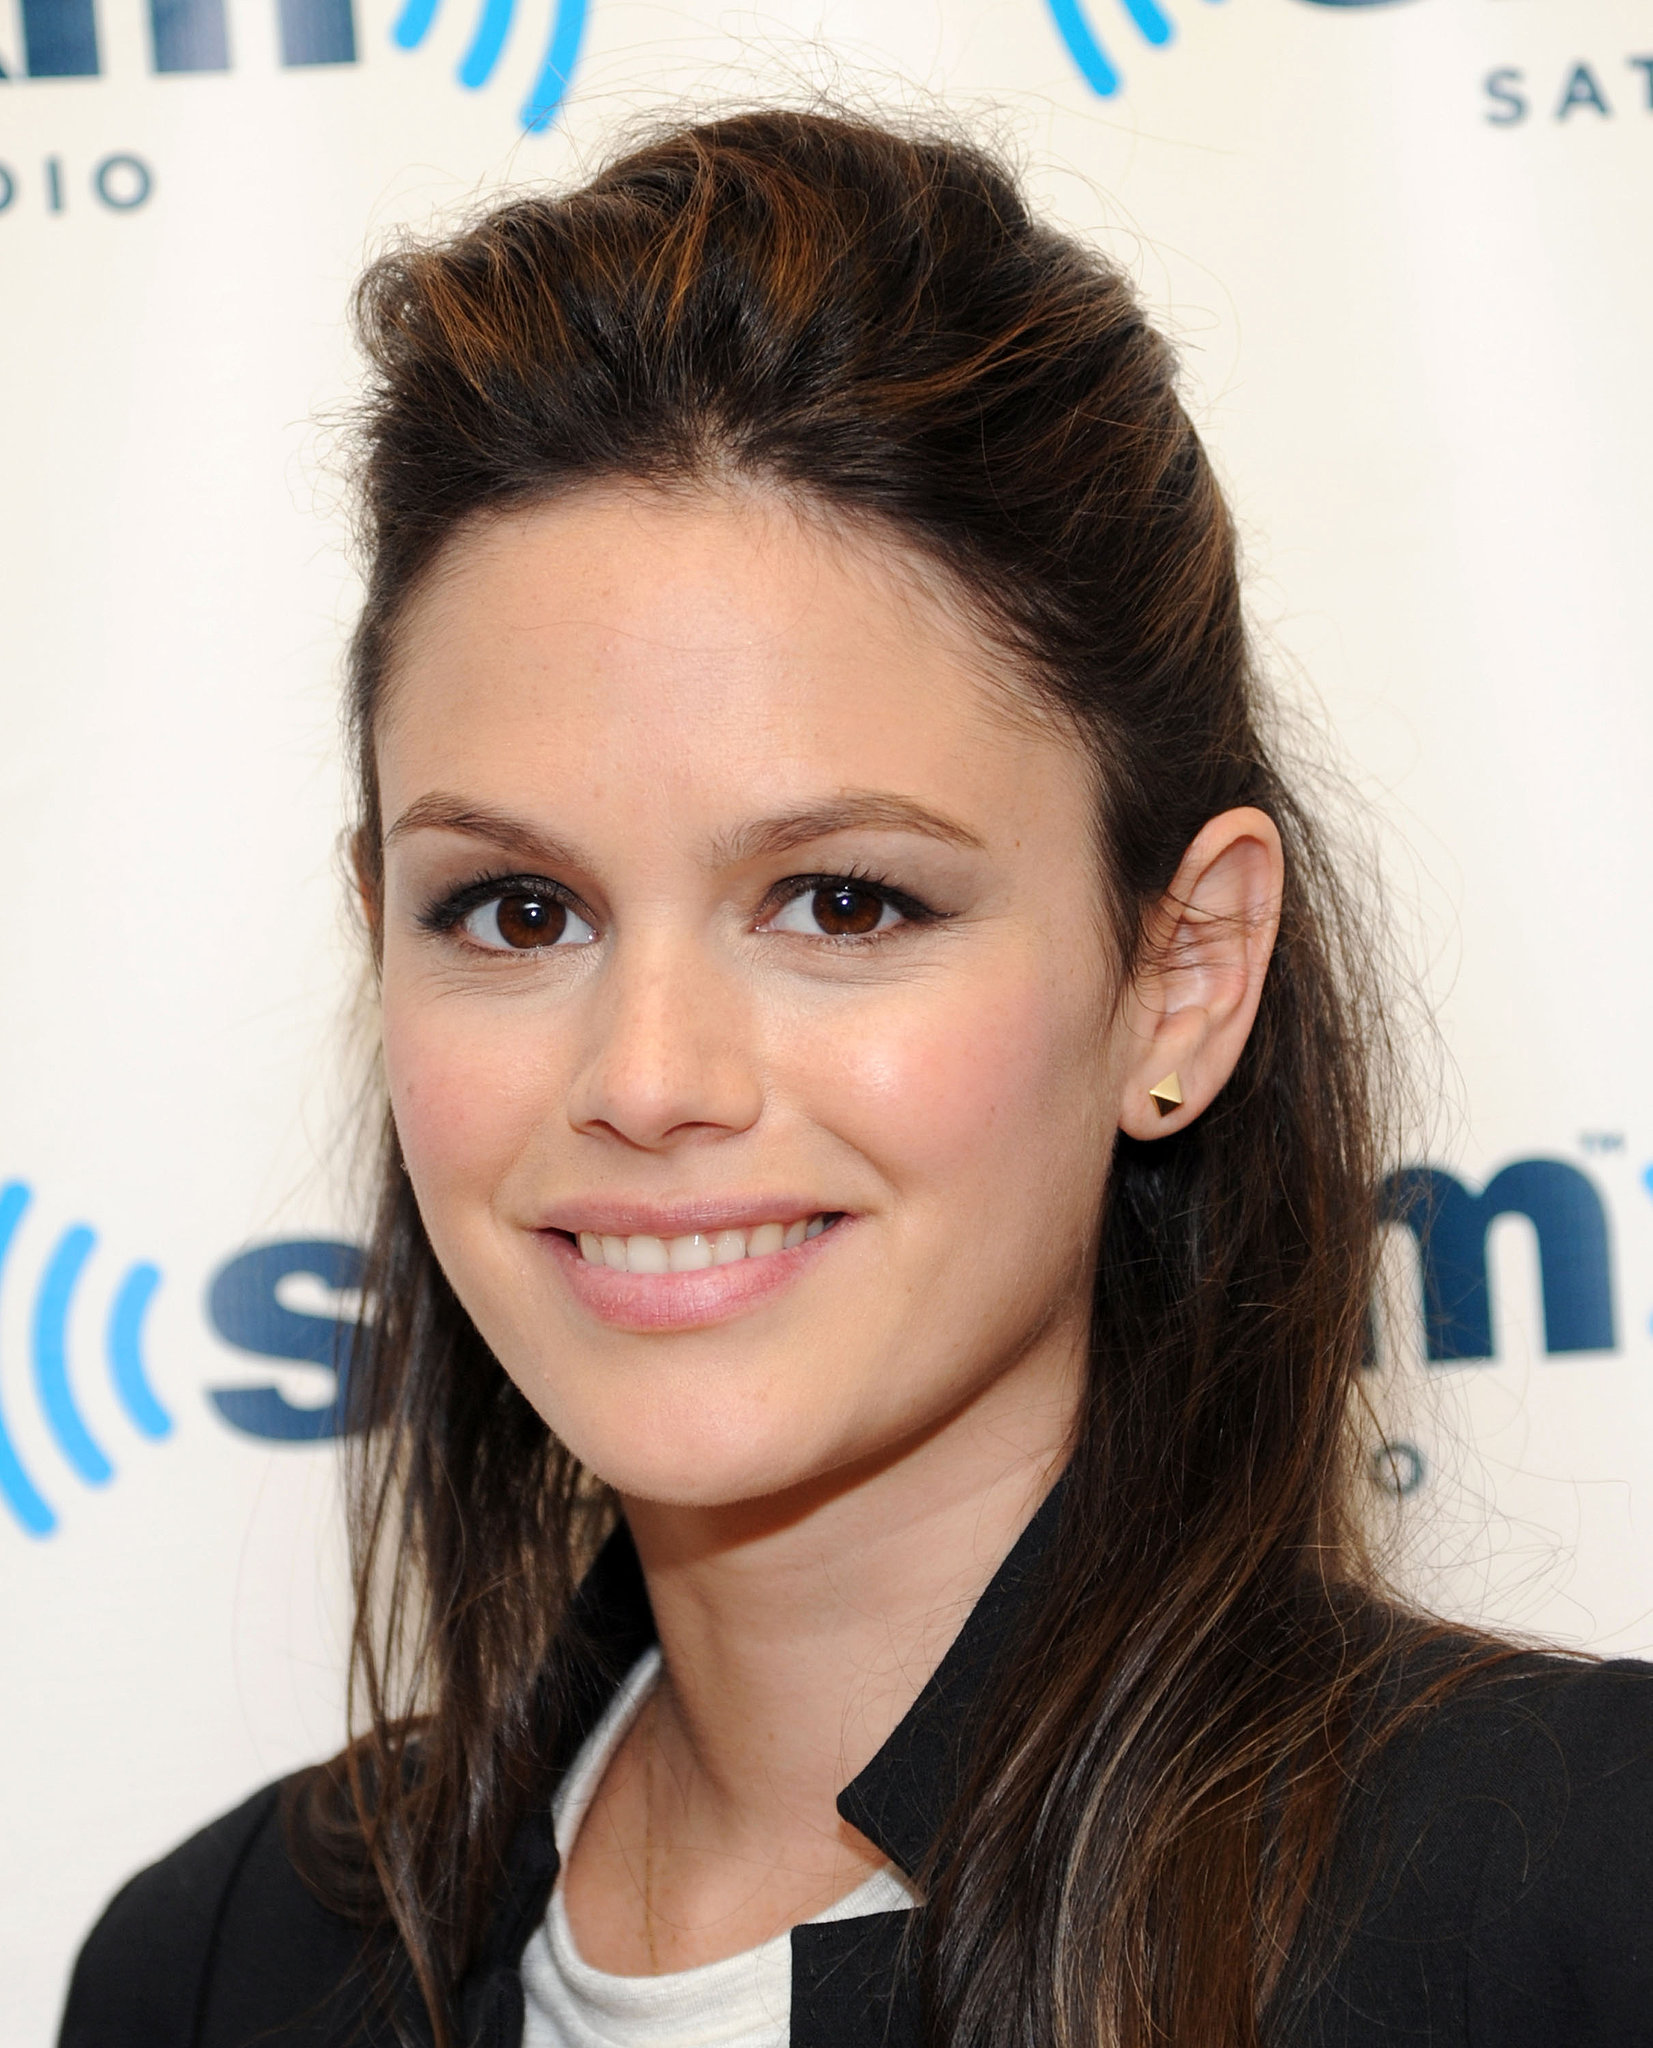 Wearing your hair half up isn't just for little girls. Rachel Bilson showed that a little extra oomph on the